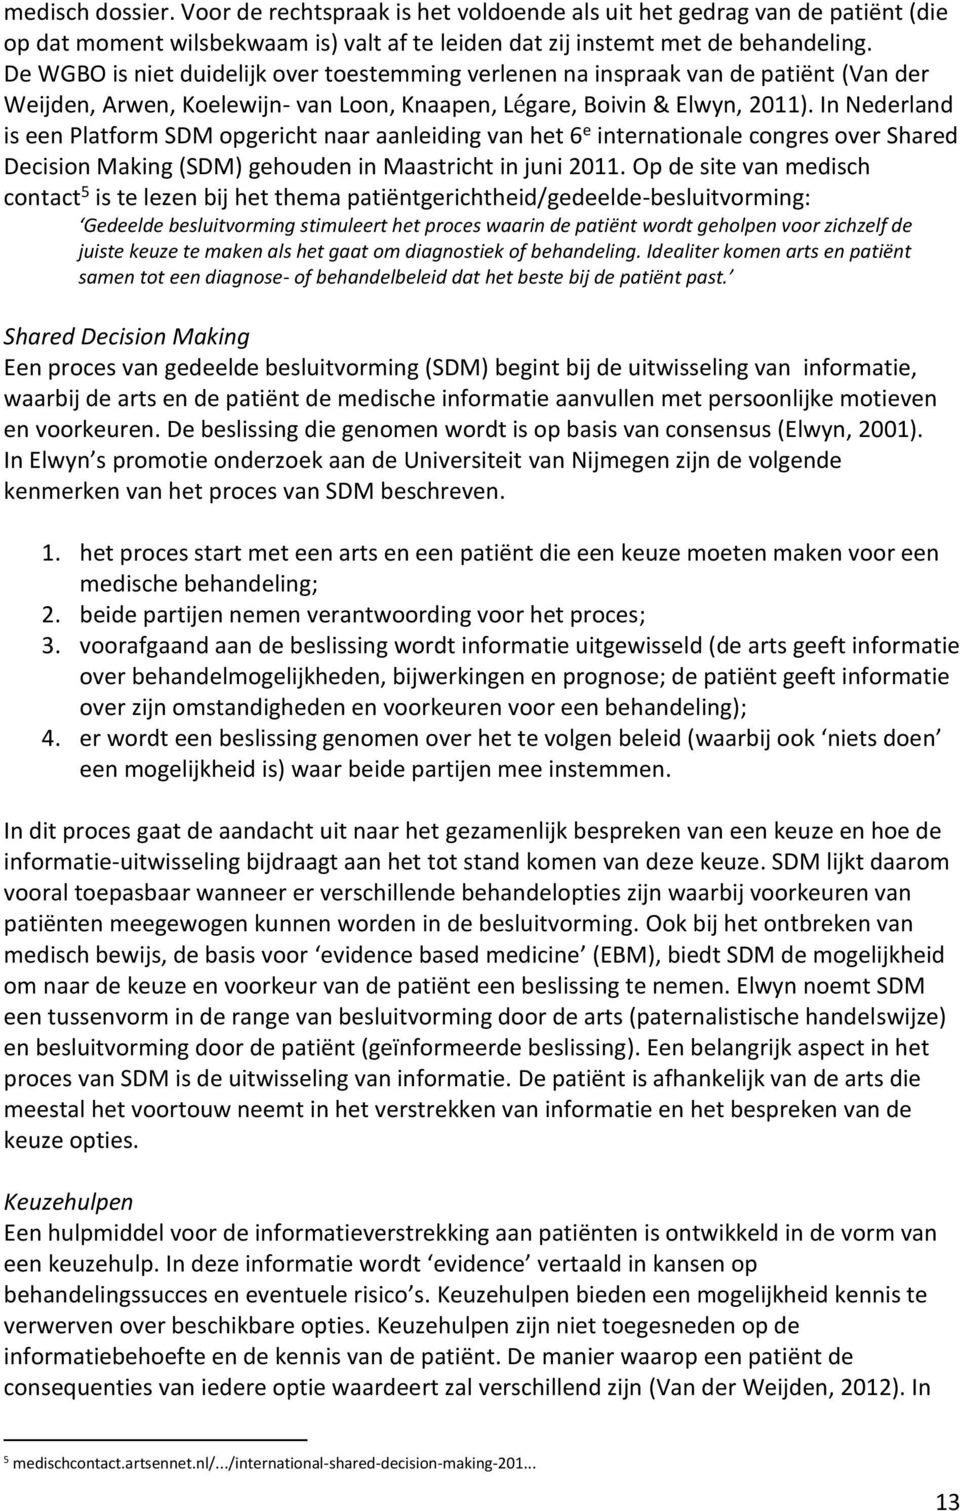 In Nederland is een Platform SDM opgericht naar aanleiding van het 6 e internationale congres over Shared Decision Making (SDM) gehouden in Maastricht in juni 2011.